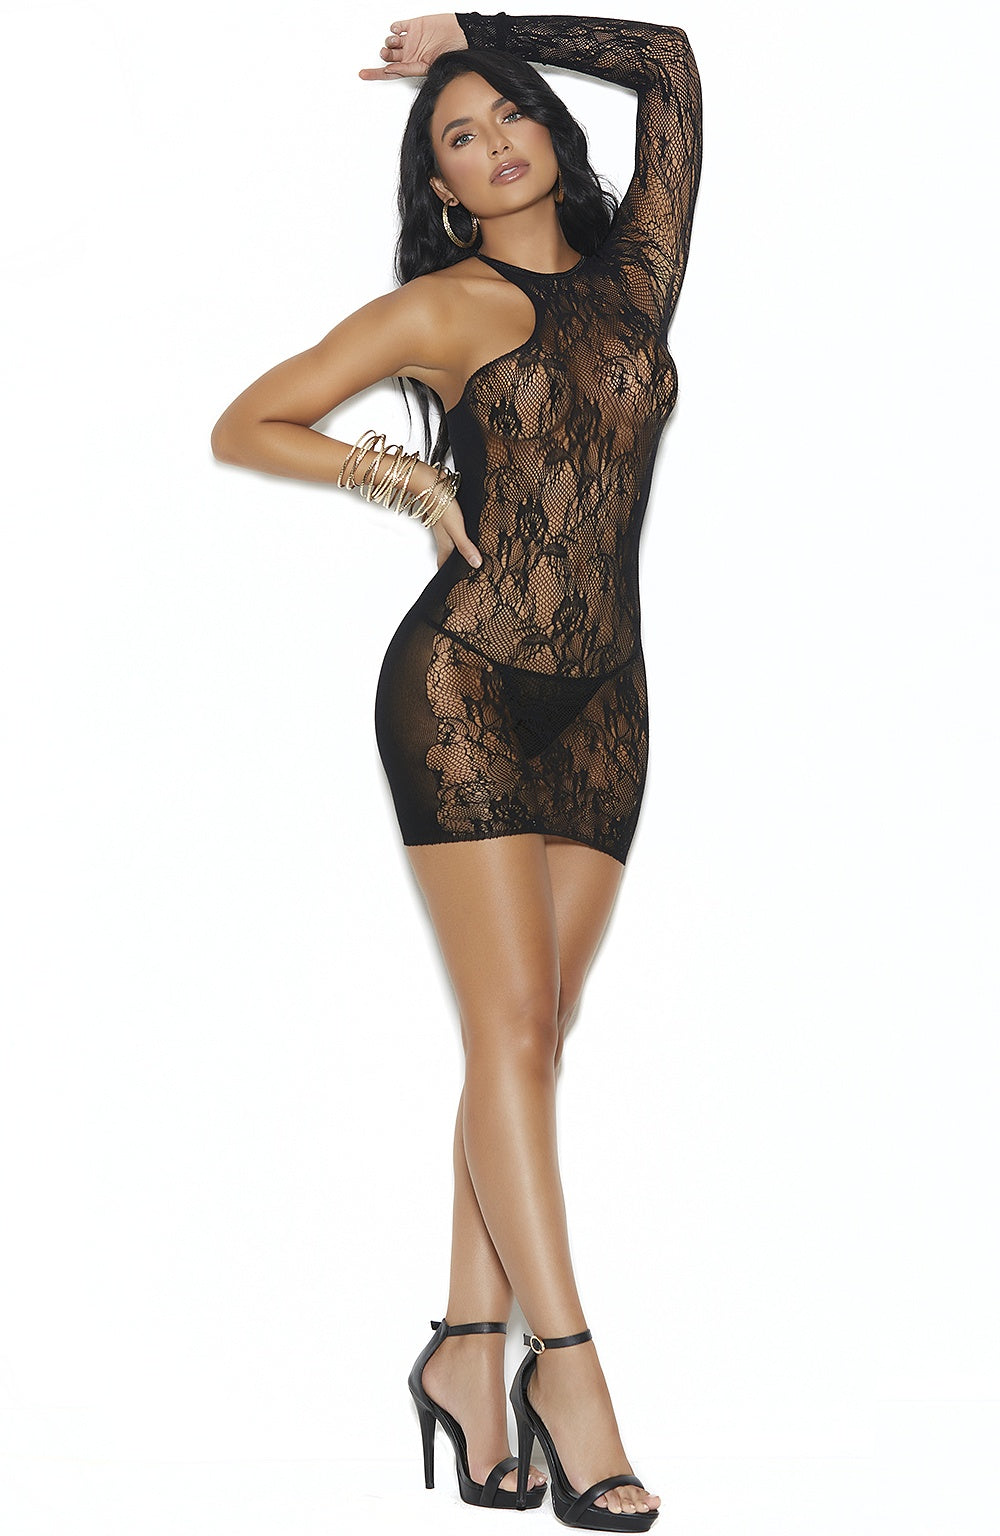 Black lace minidress - Sexylingerieland